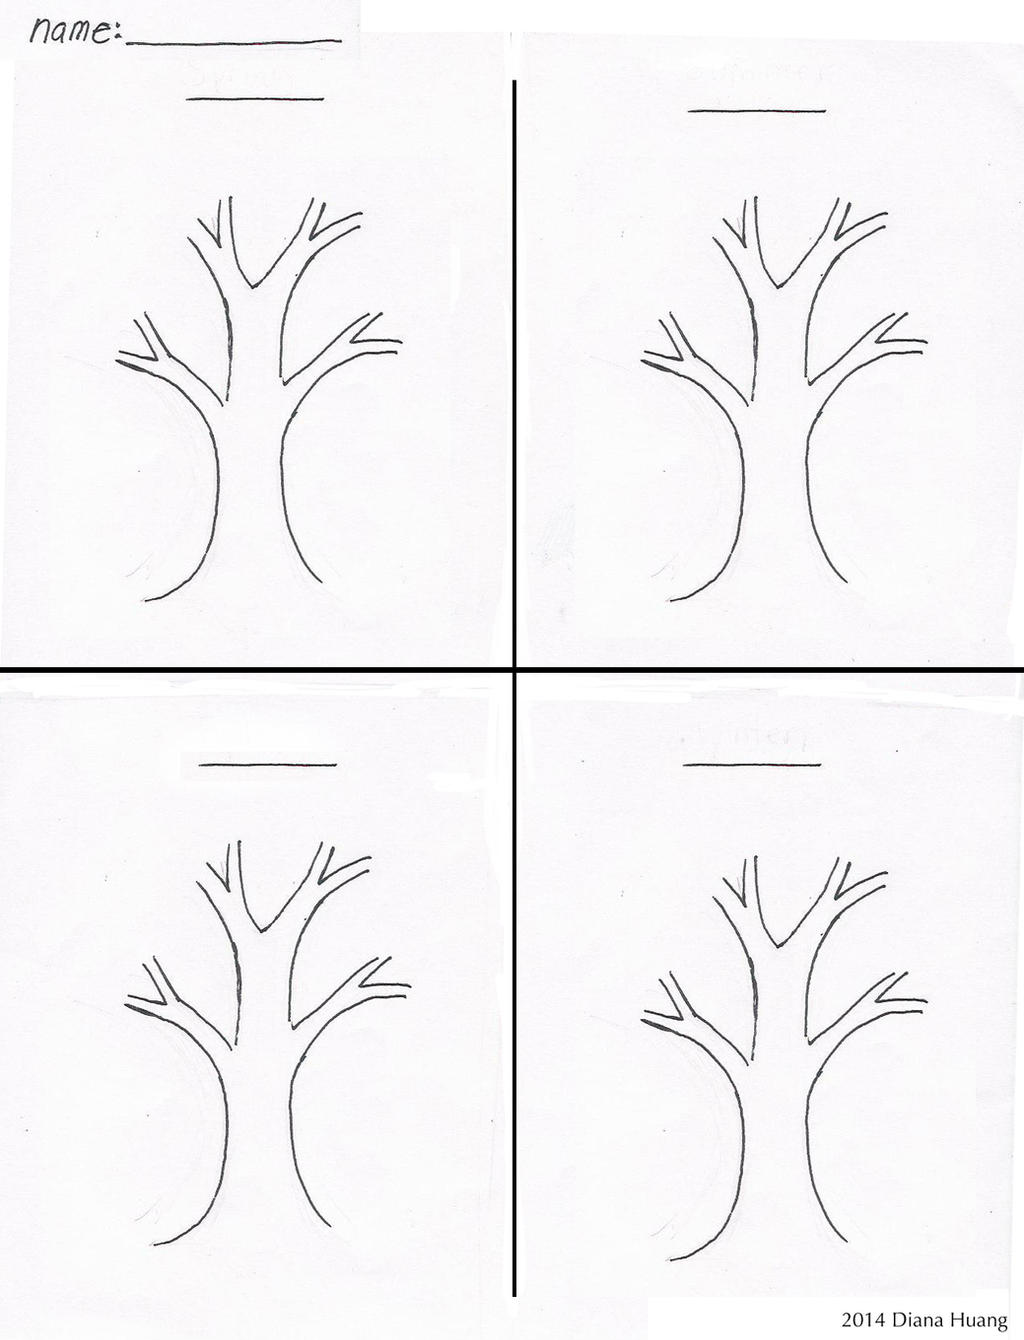 four seasons tree drawing template worksheet by diana huang on deviantart. Black Bedroom Furniture Sets. Home Design Ideas